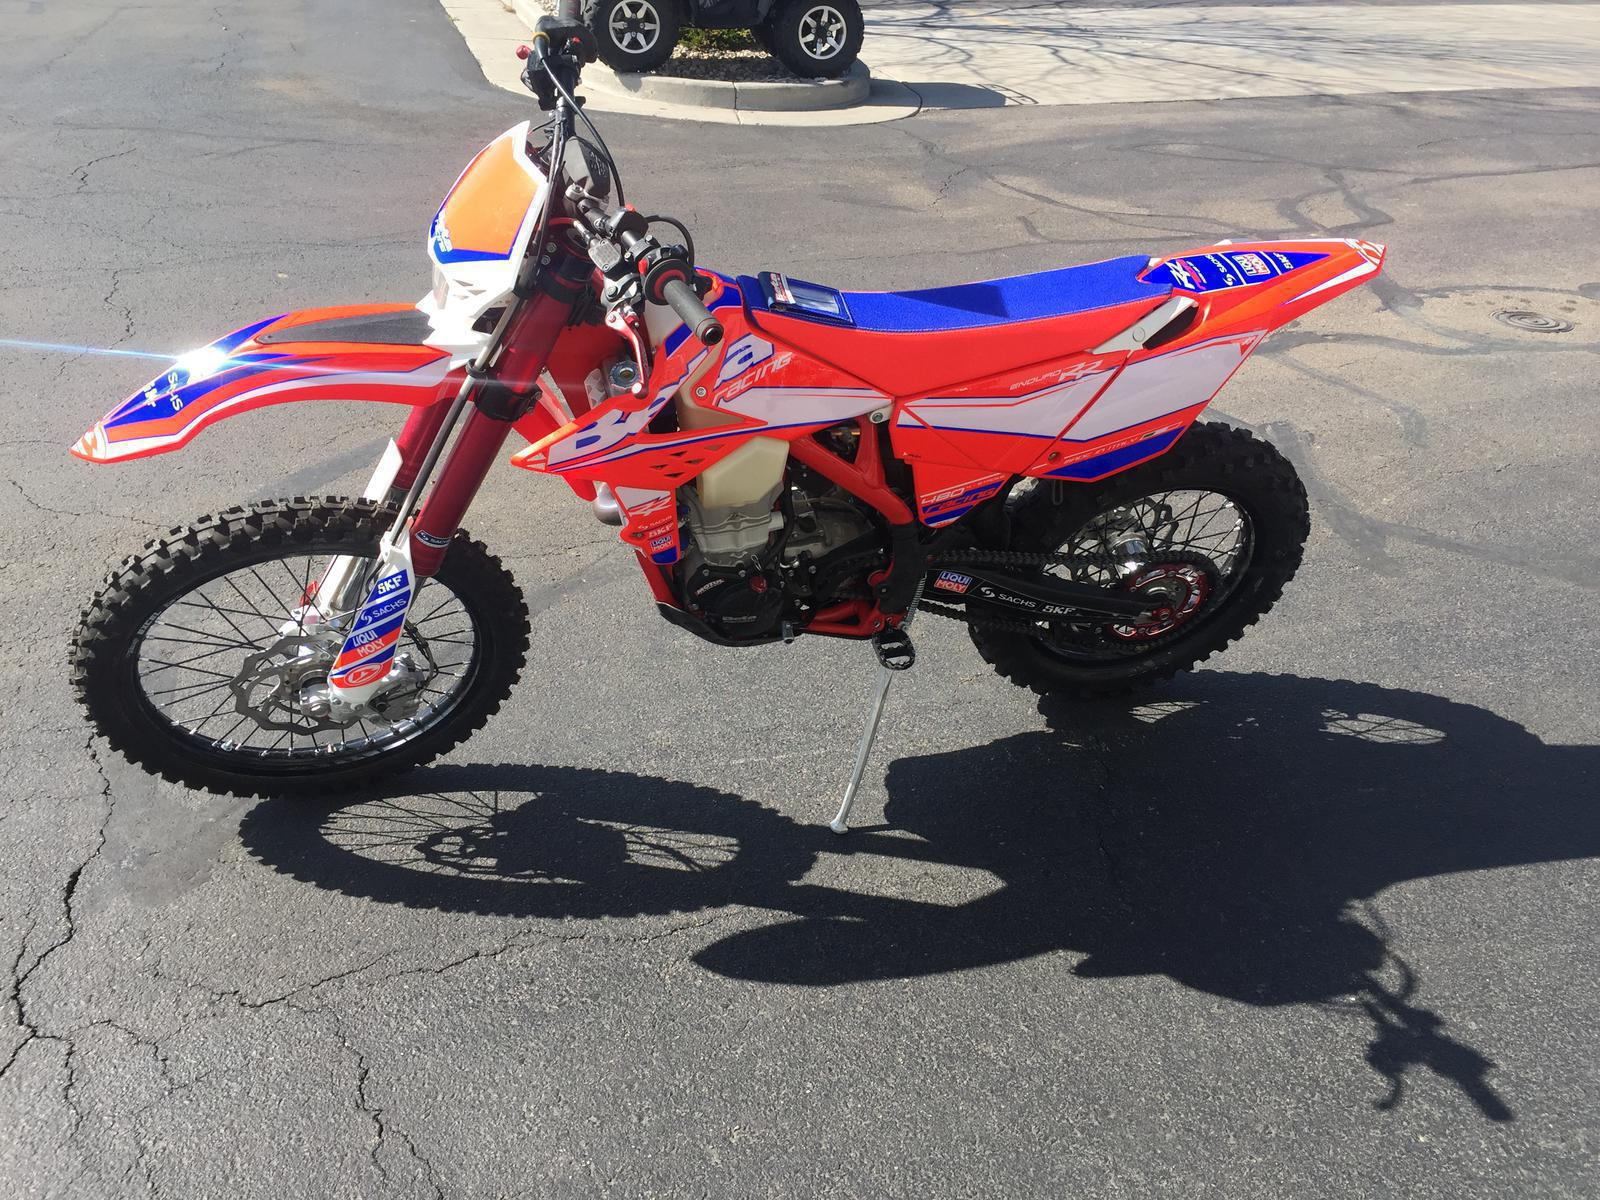 2017 Beta Motorcycles 480 Rr Race Edition For Sale In Loveland Co